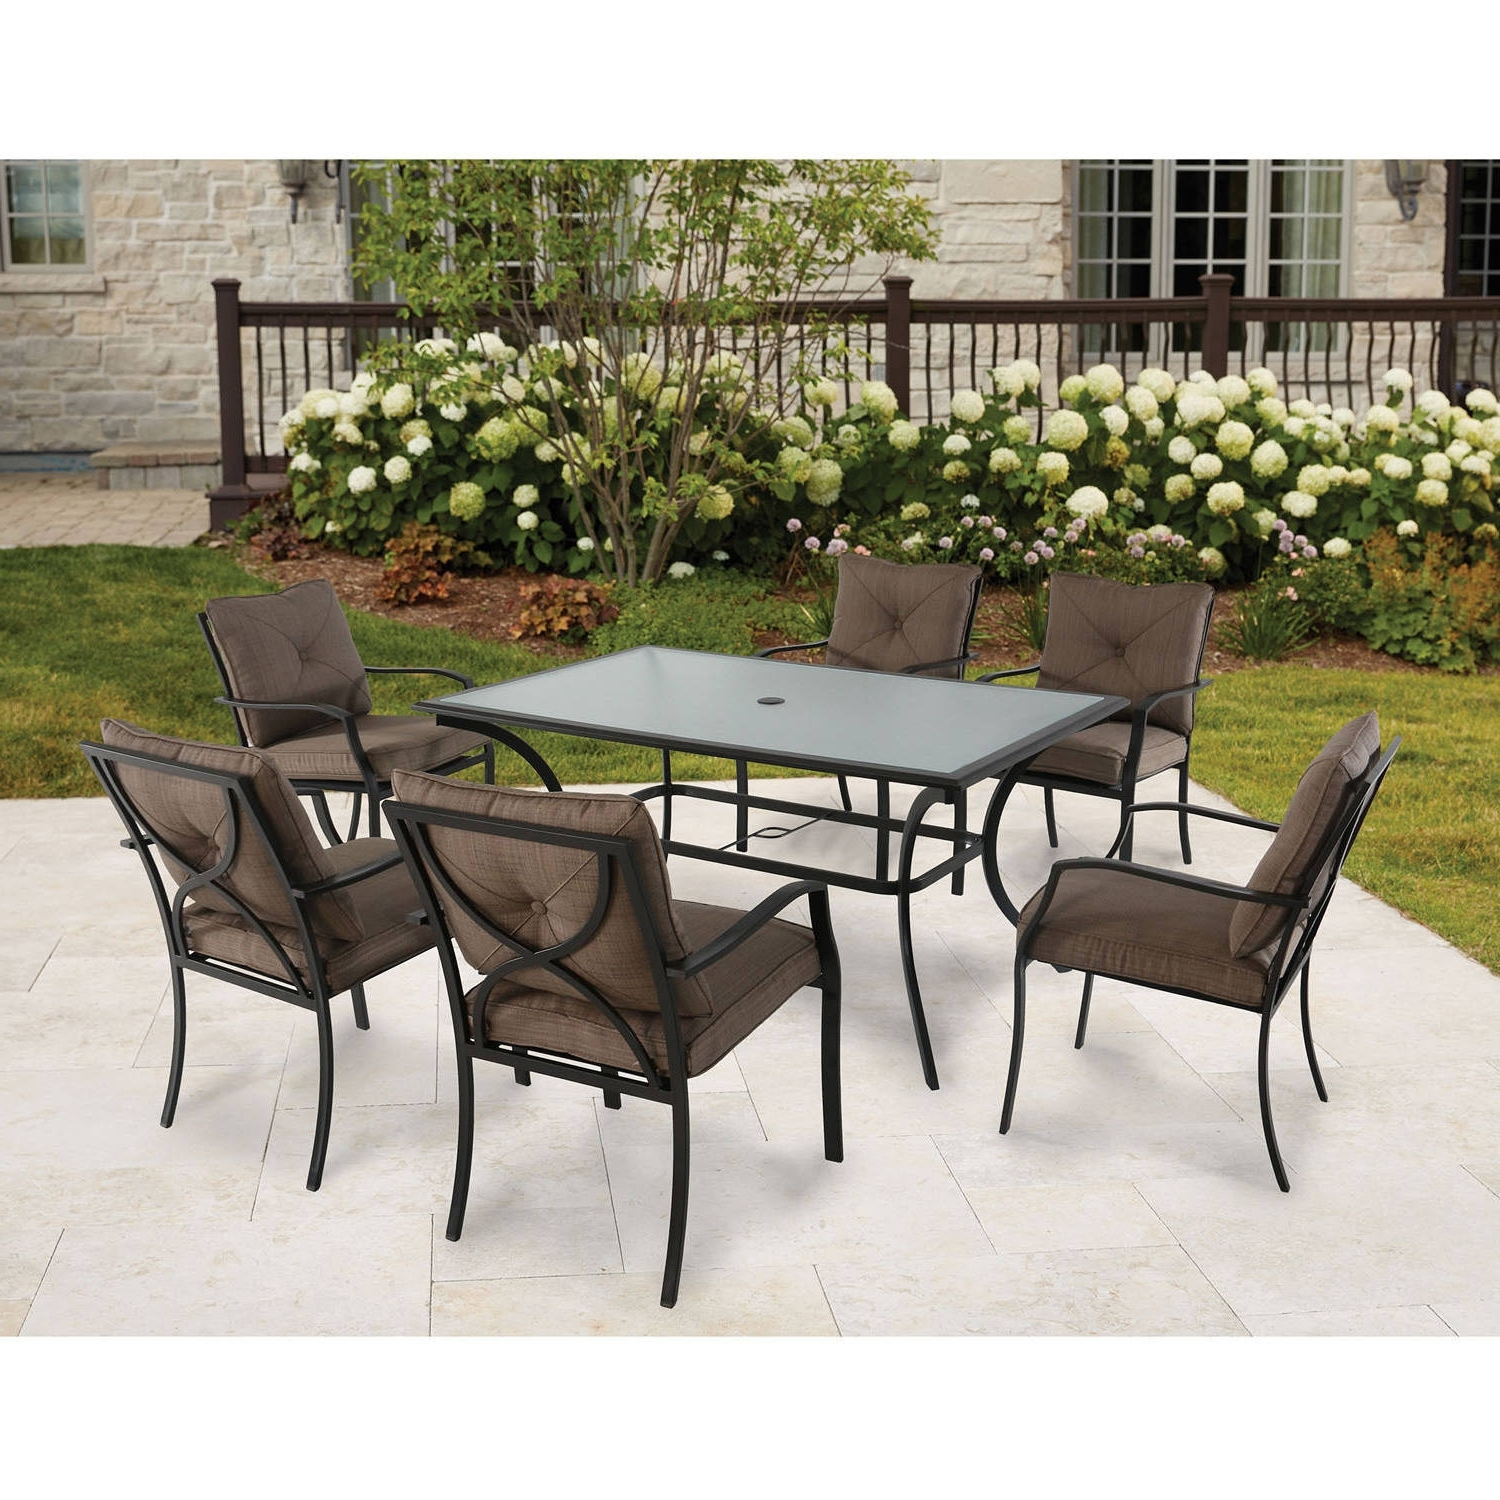 Cambridge Crawford 7-Piece Outdoor Dining Set - Walmart throughout Most Recent Crawford 7 Piece Rectangle Dining Sets